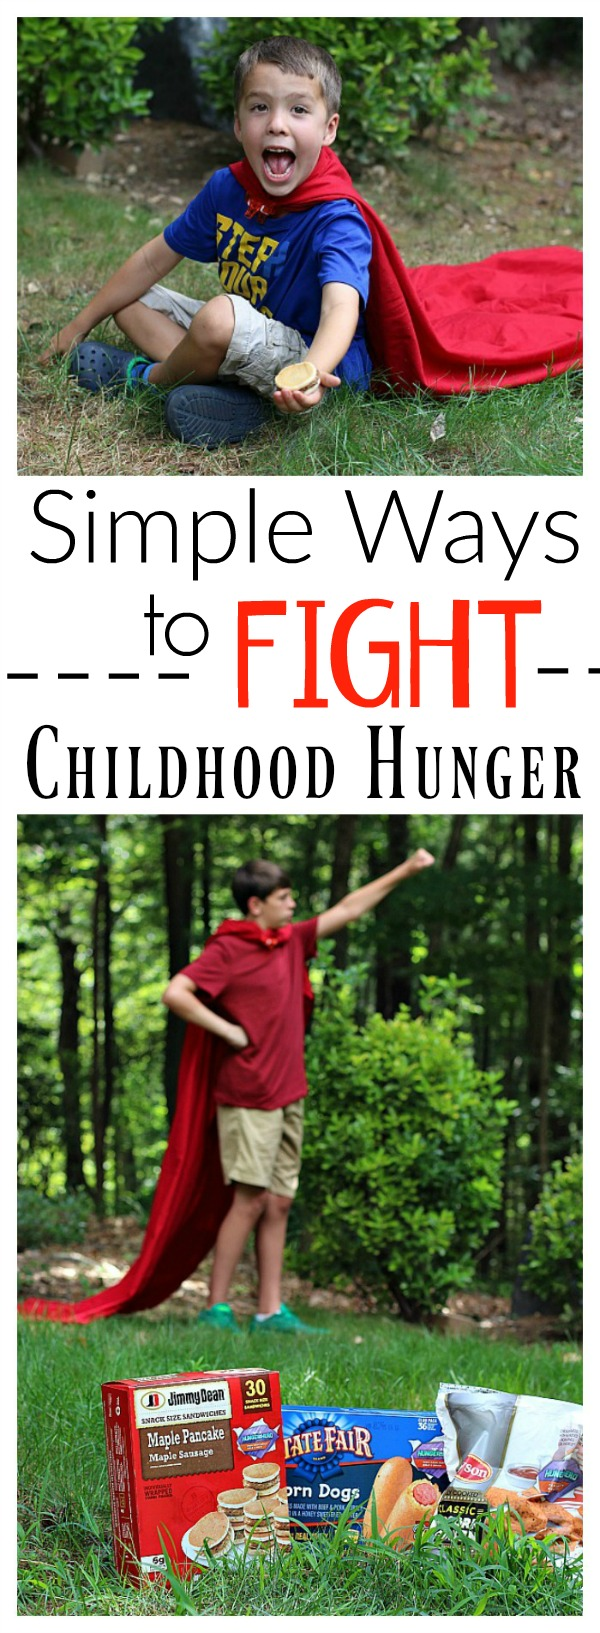 Simple Ways to Fight Childhood Hunger